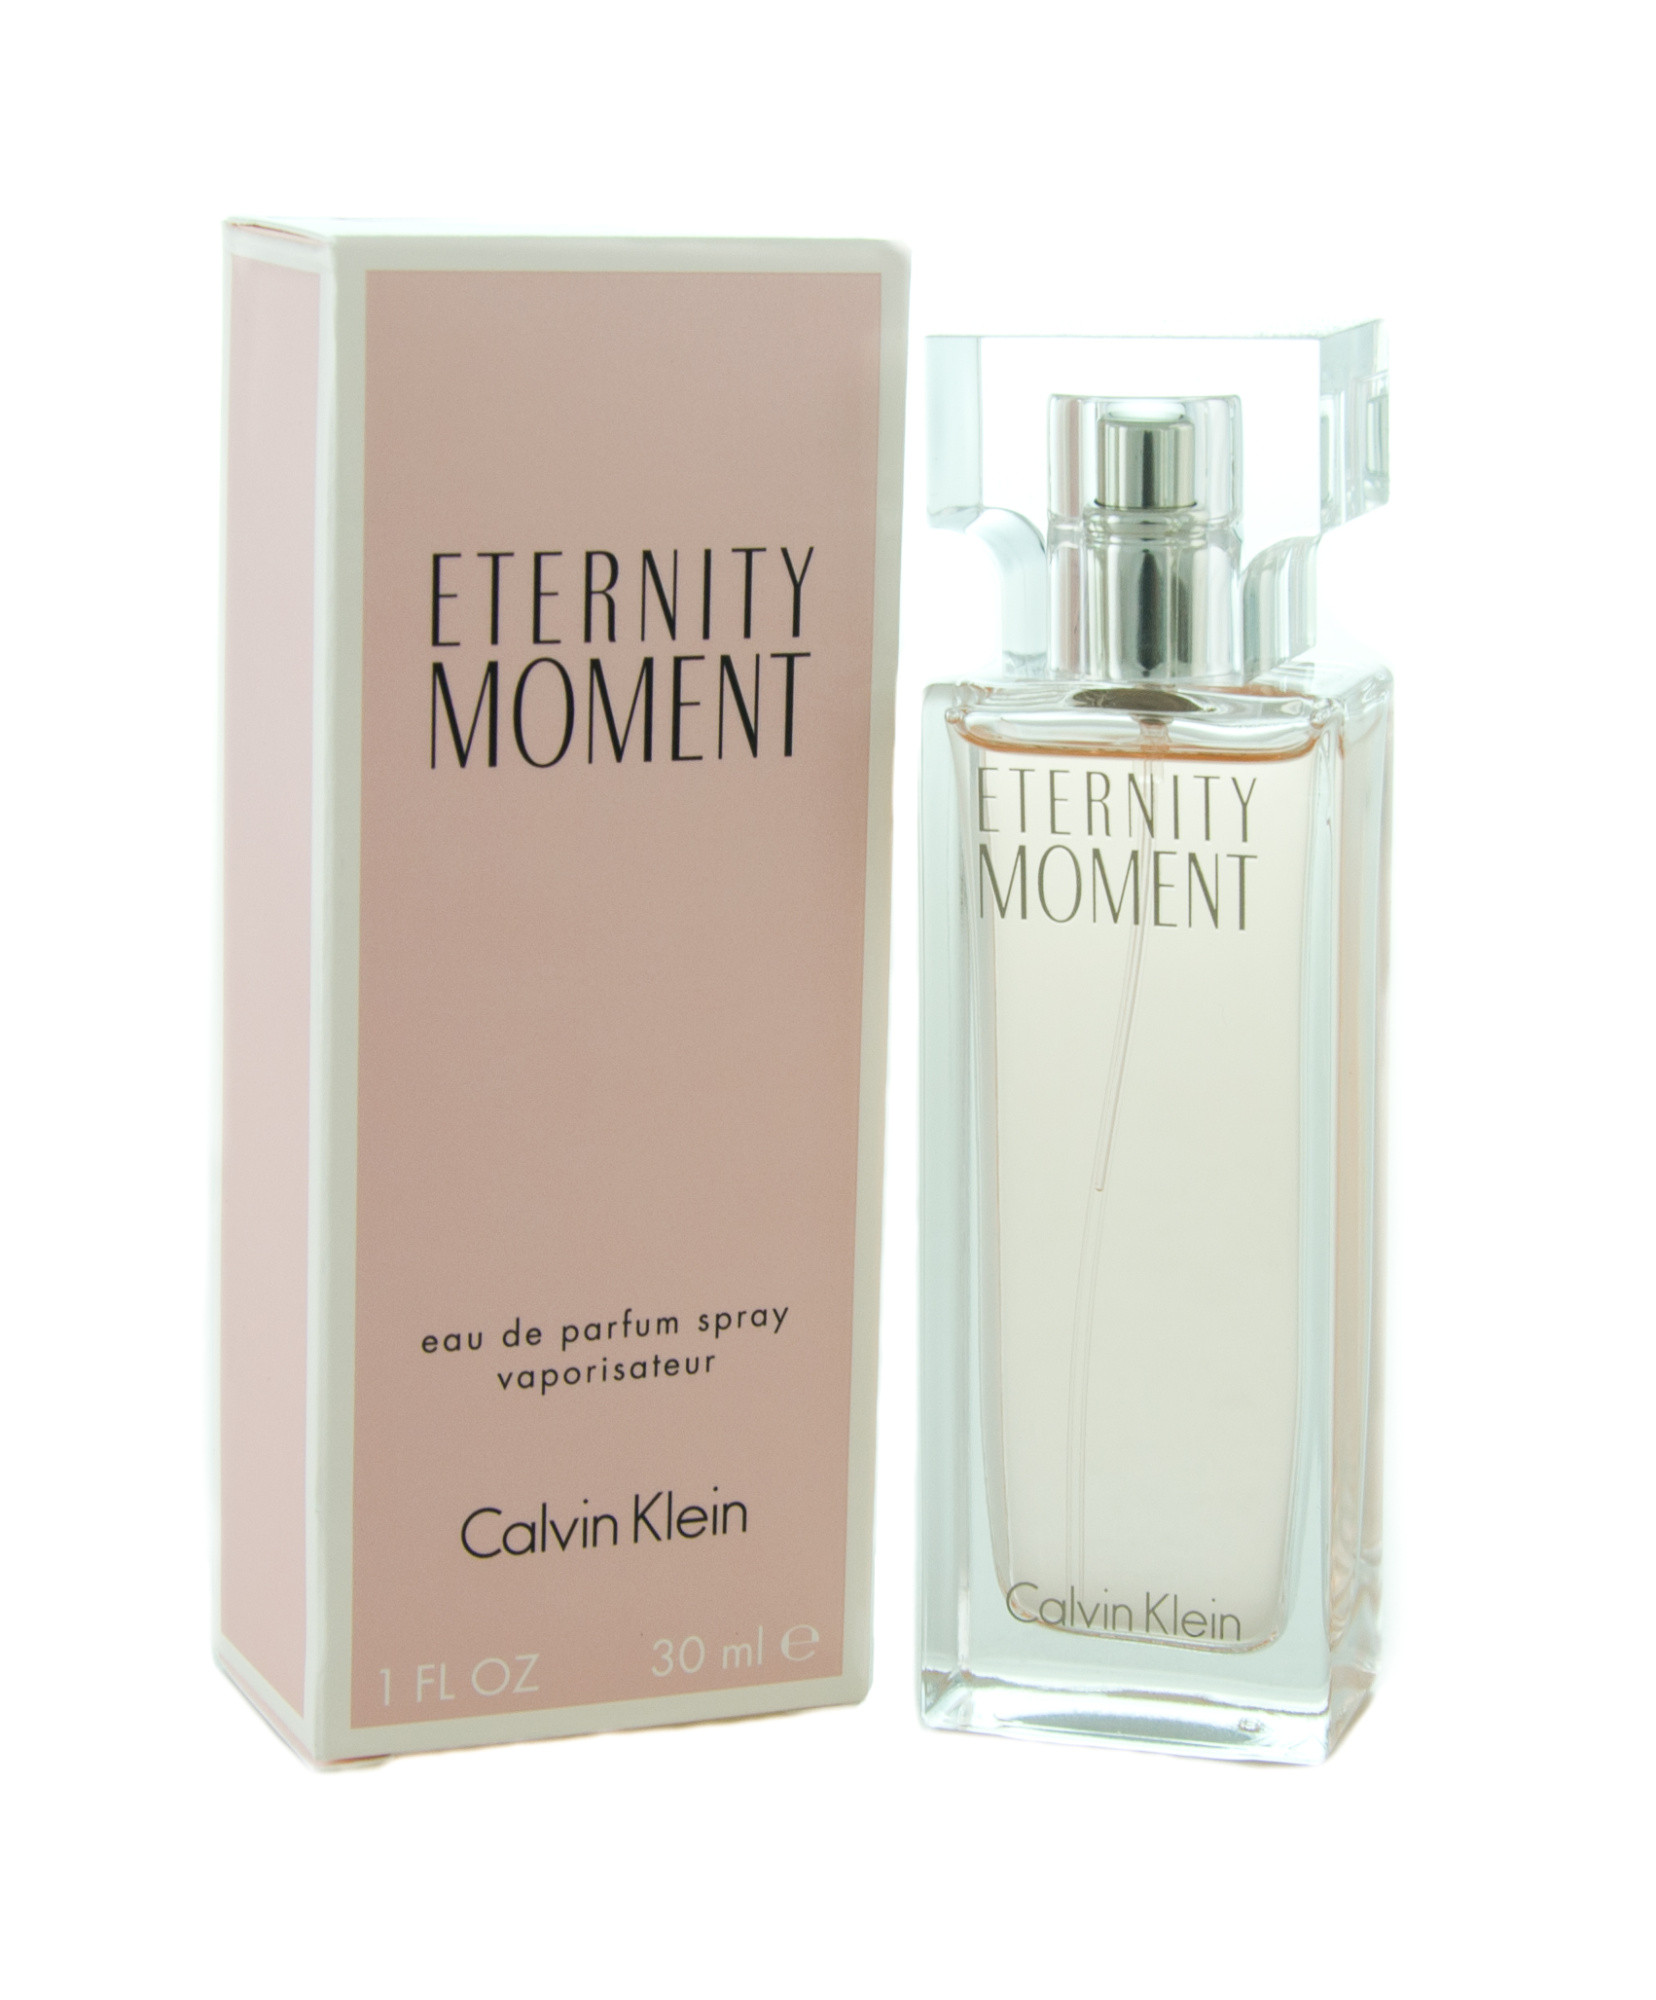 Calvin Klein Eternity Moment Eau De Parfum Spray